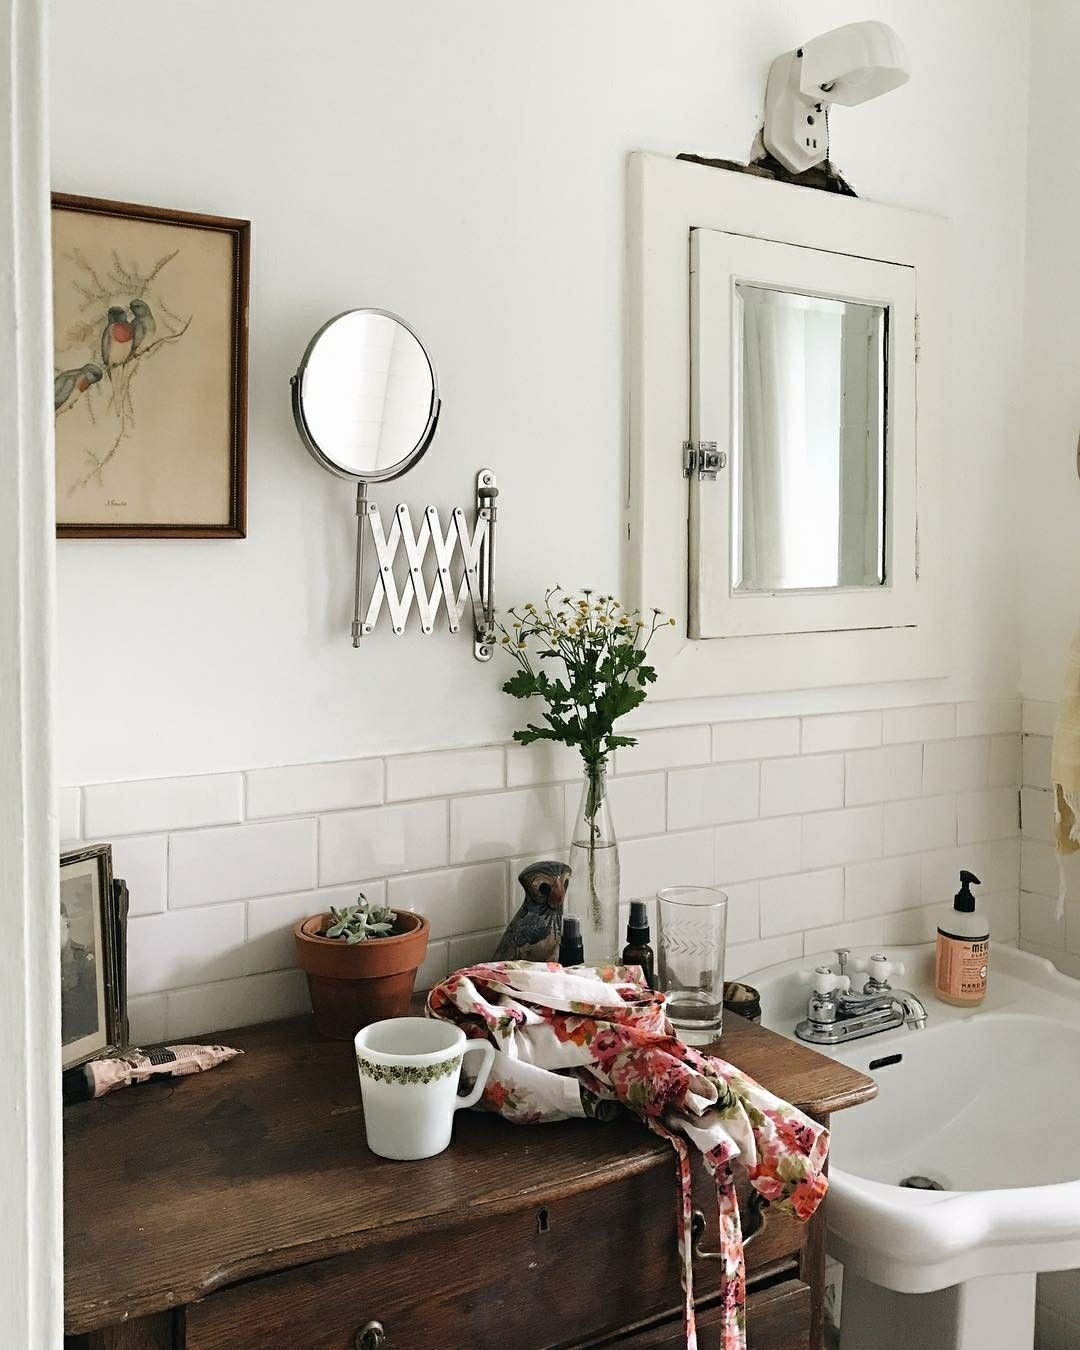 Pin by Paula W. on bathe | Pinterest | Interiors, Flats and Smallest ...